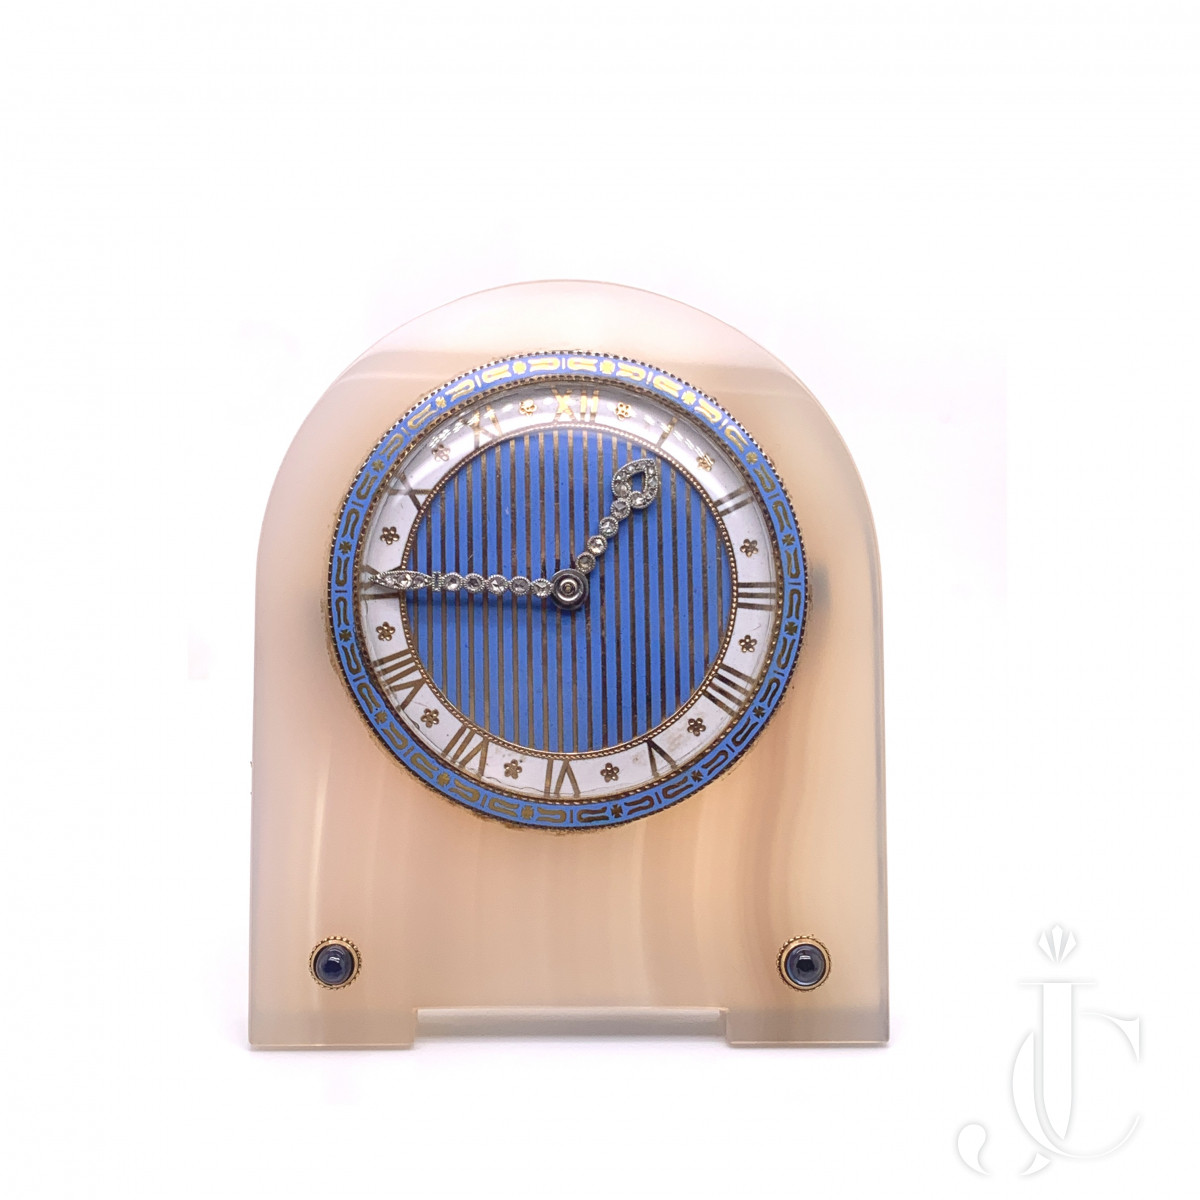 An 18k gold and silver, agate, enamel, sapphire and diamond clocks by Cartier